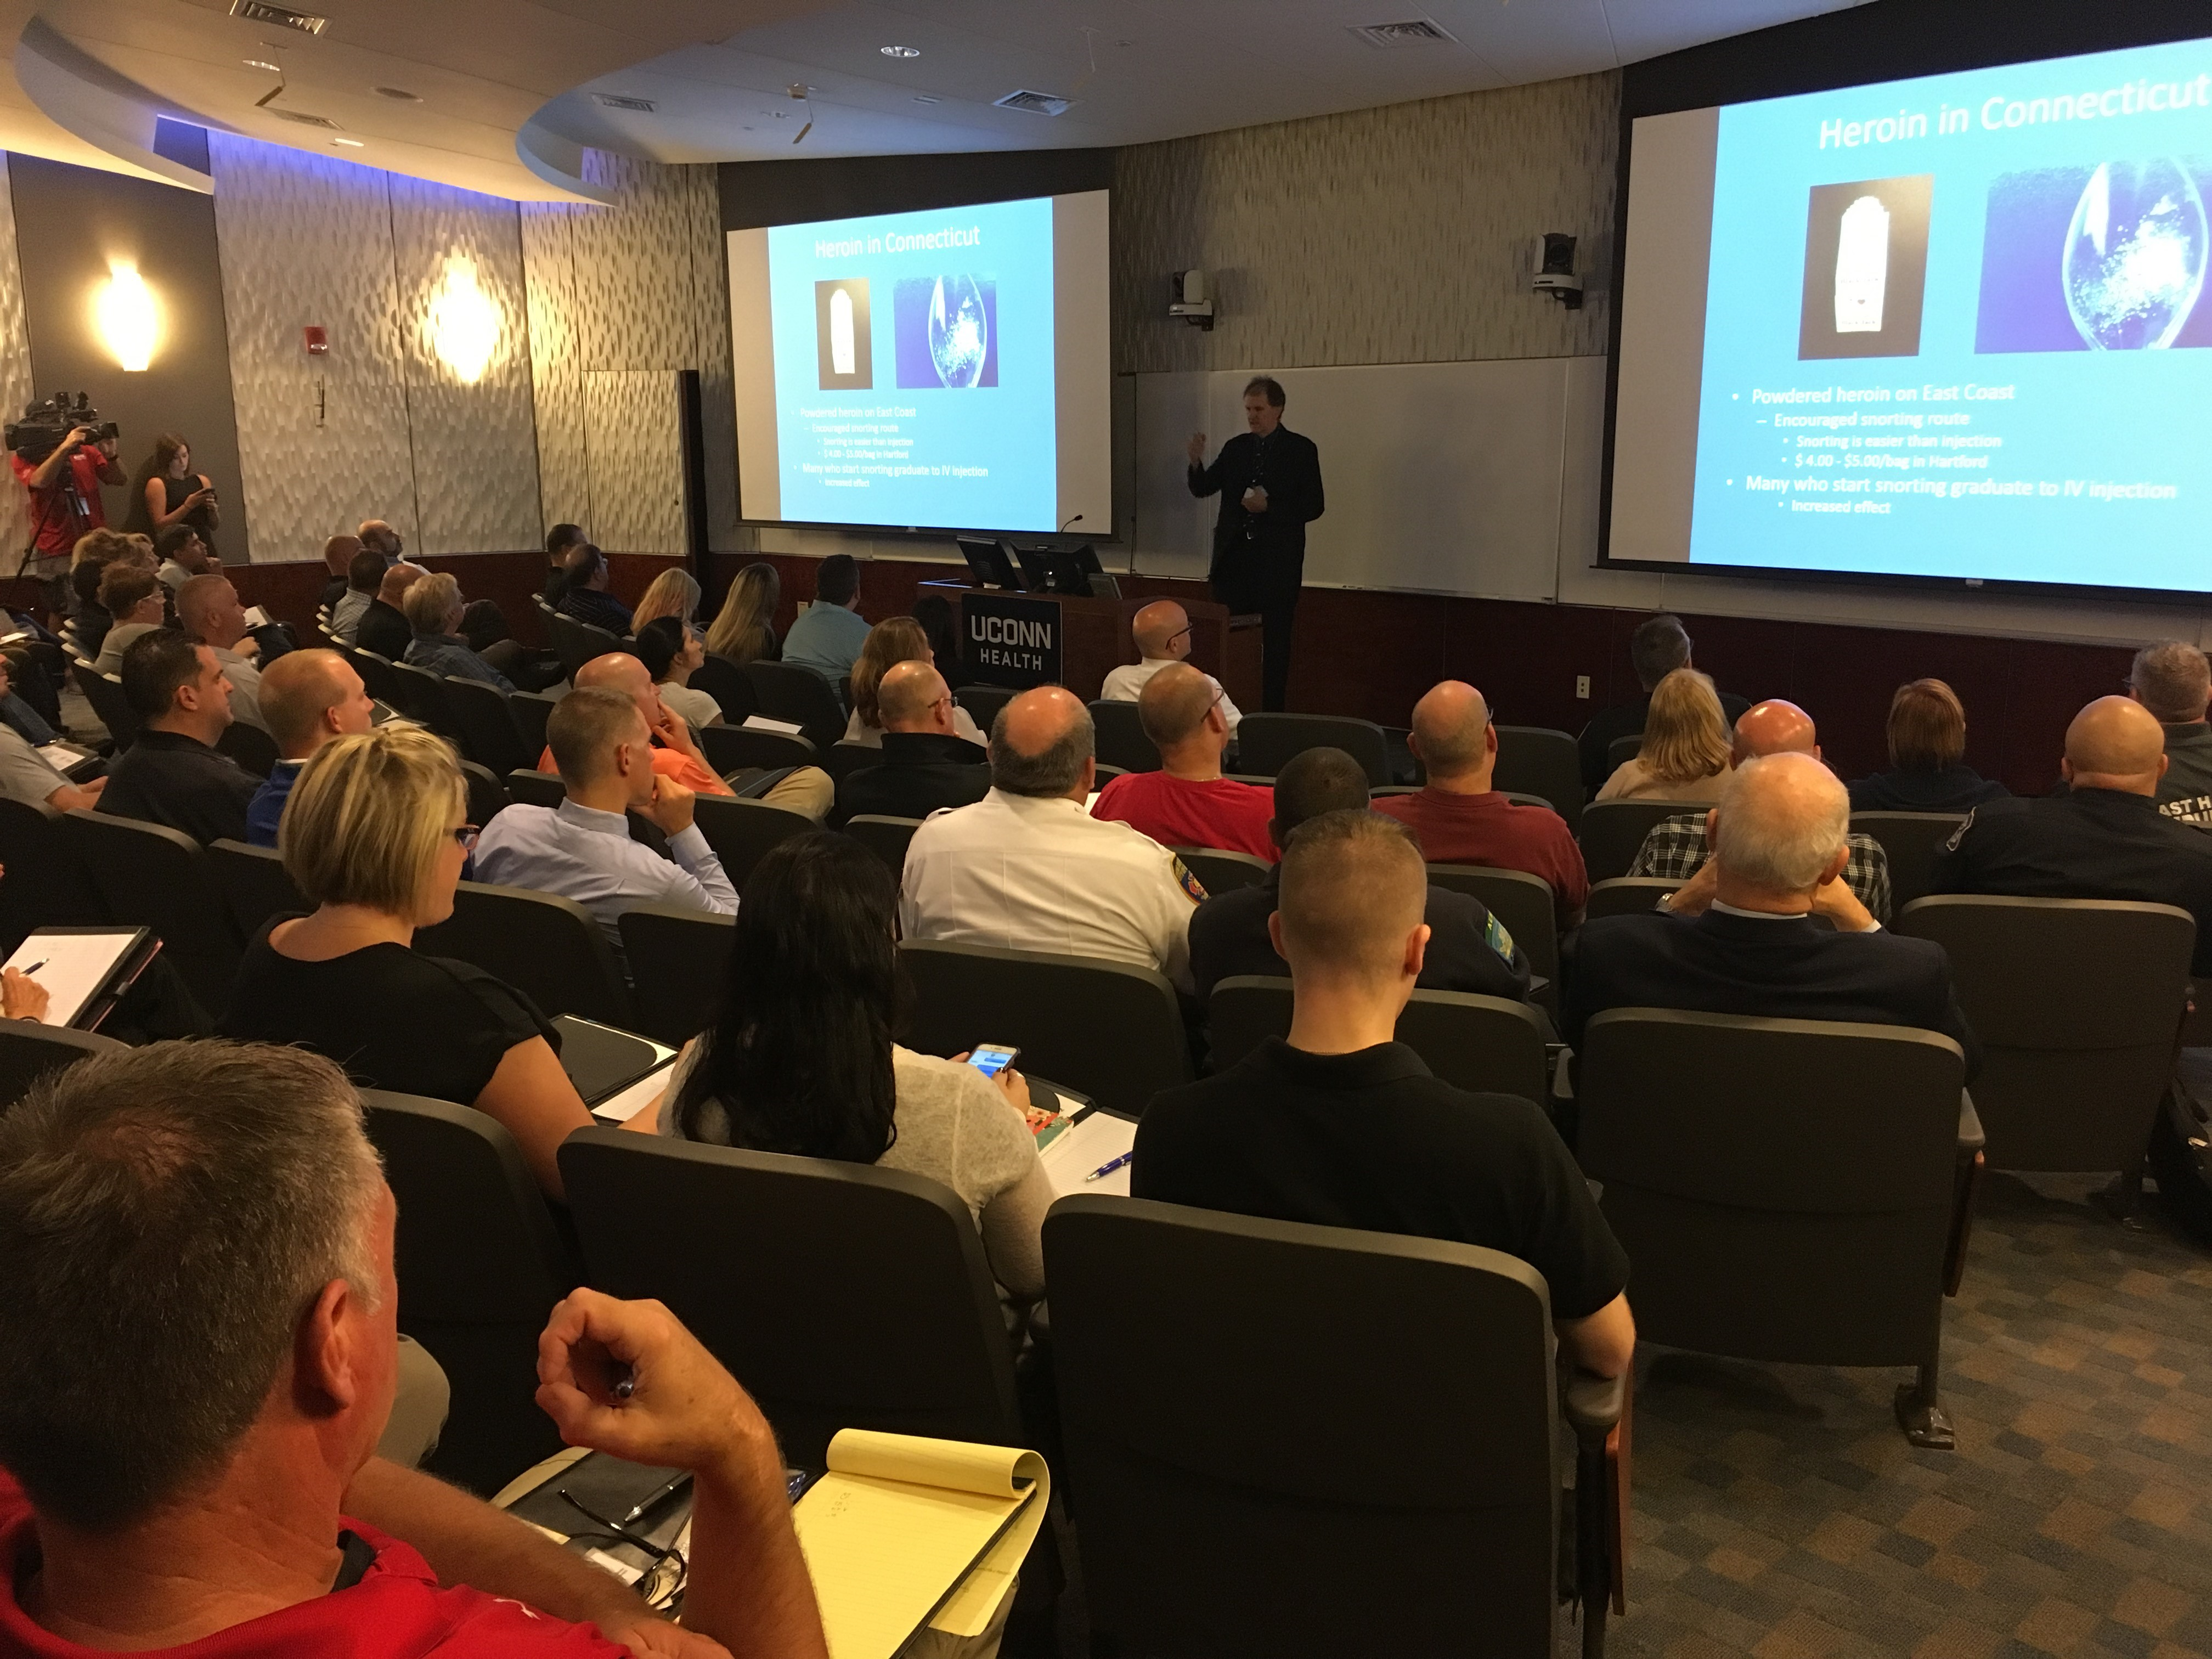 UConn Health EMS Coordinator, Peter Canning, addressing the more than 100 experts attending the statewide forum examining ways to stop the growing opioid epidemic in Connecticut (UConn Health Photo).